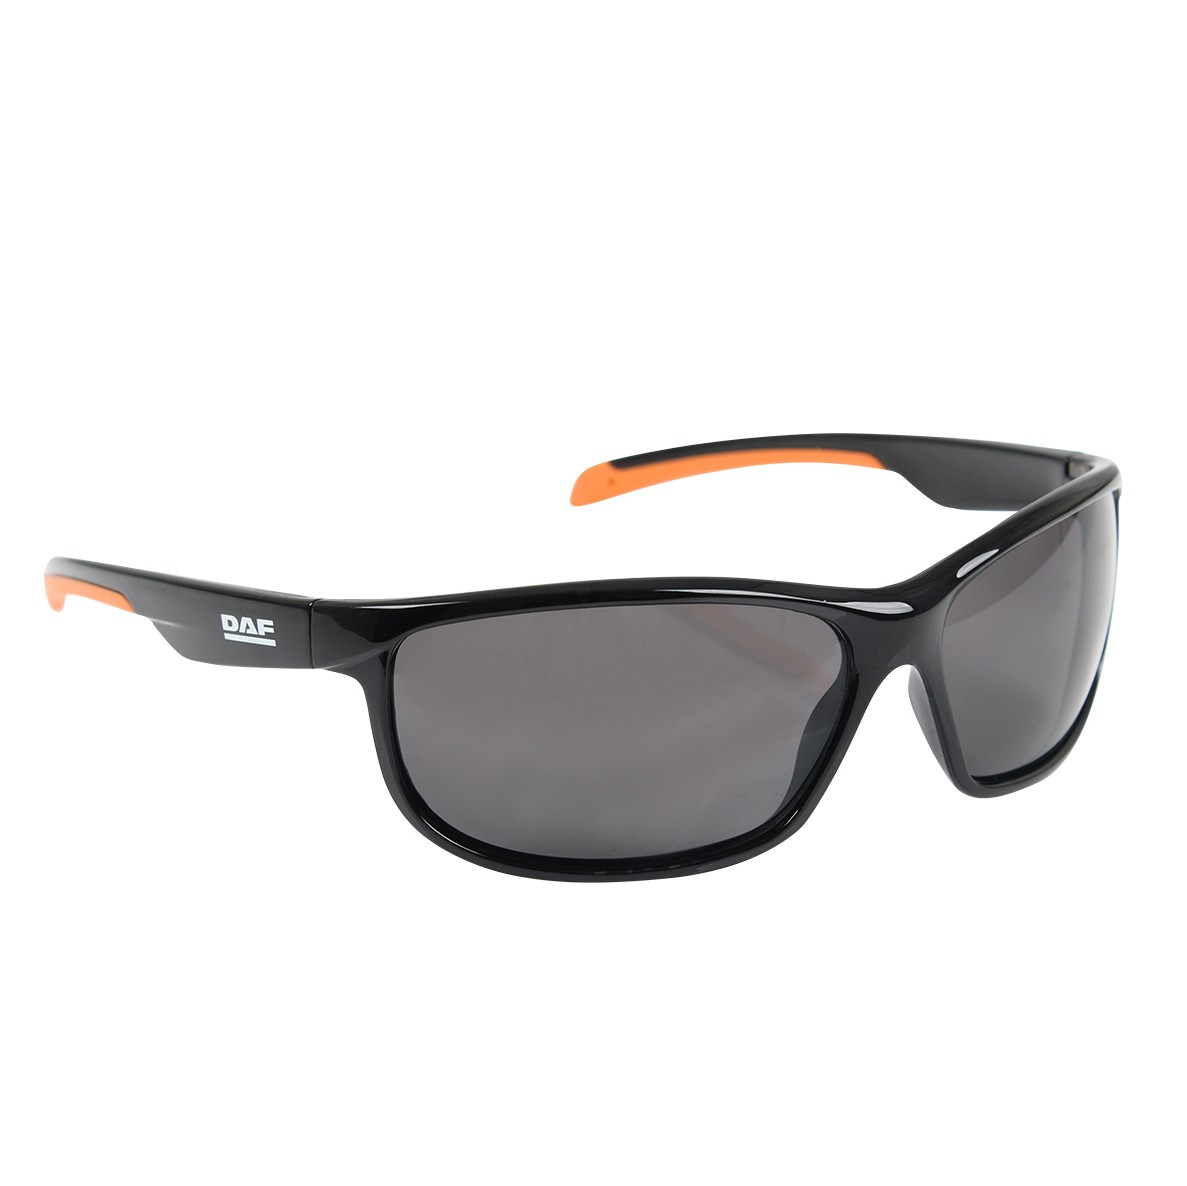 DAF Sunglasses with Case DFM004006_1